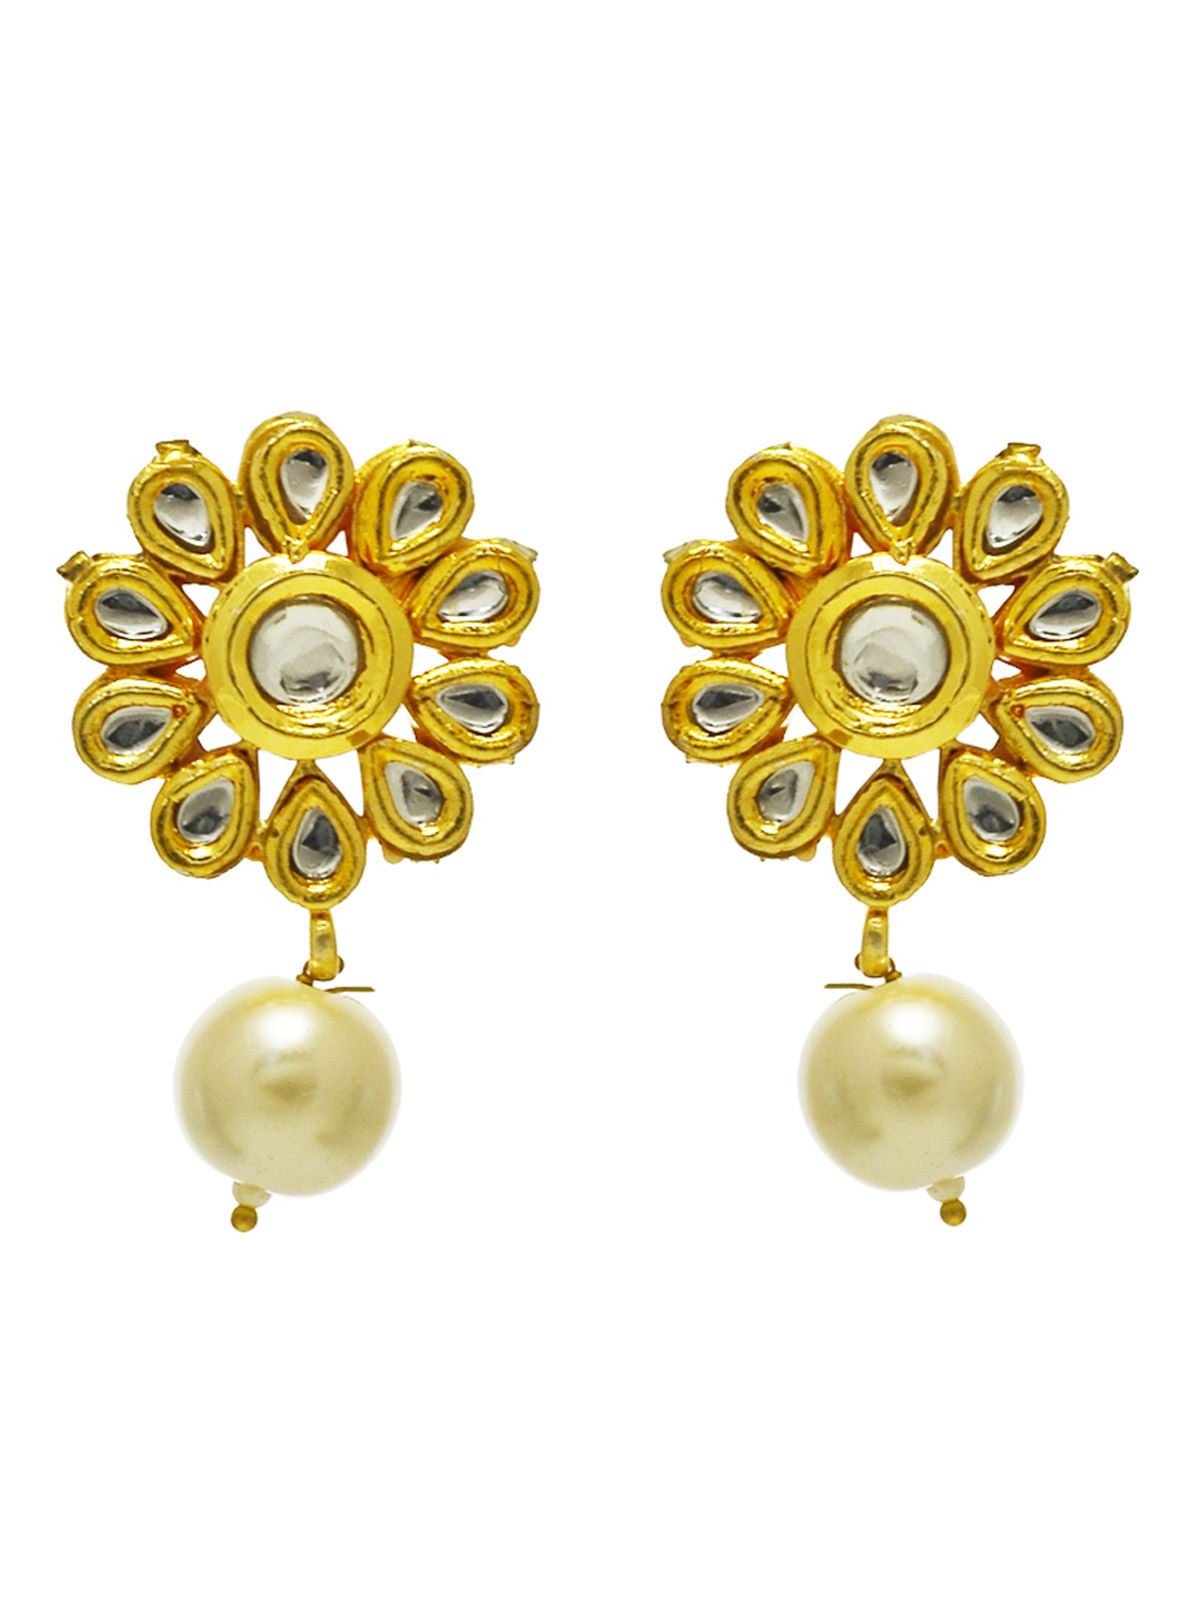 Kundan and Peral Stud earrings